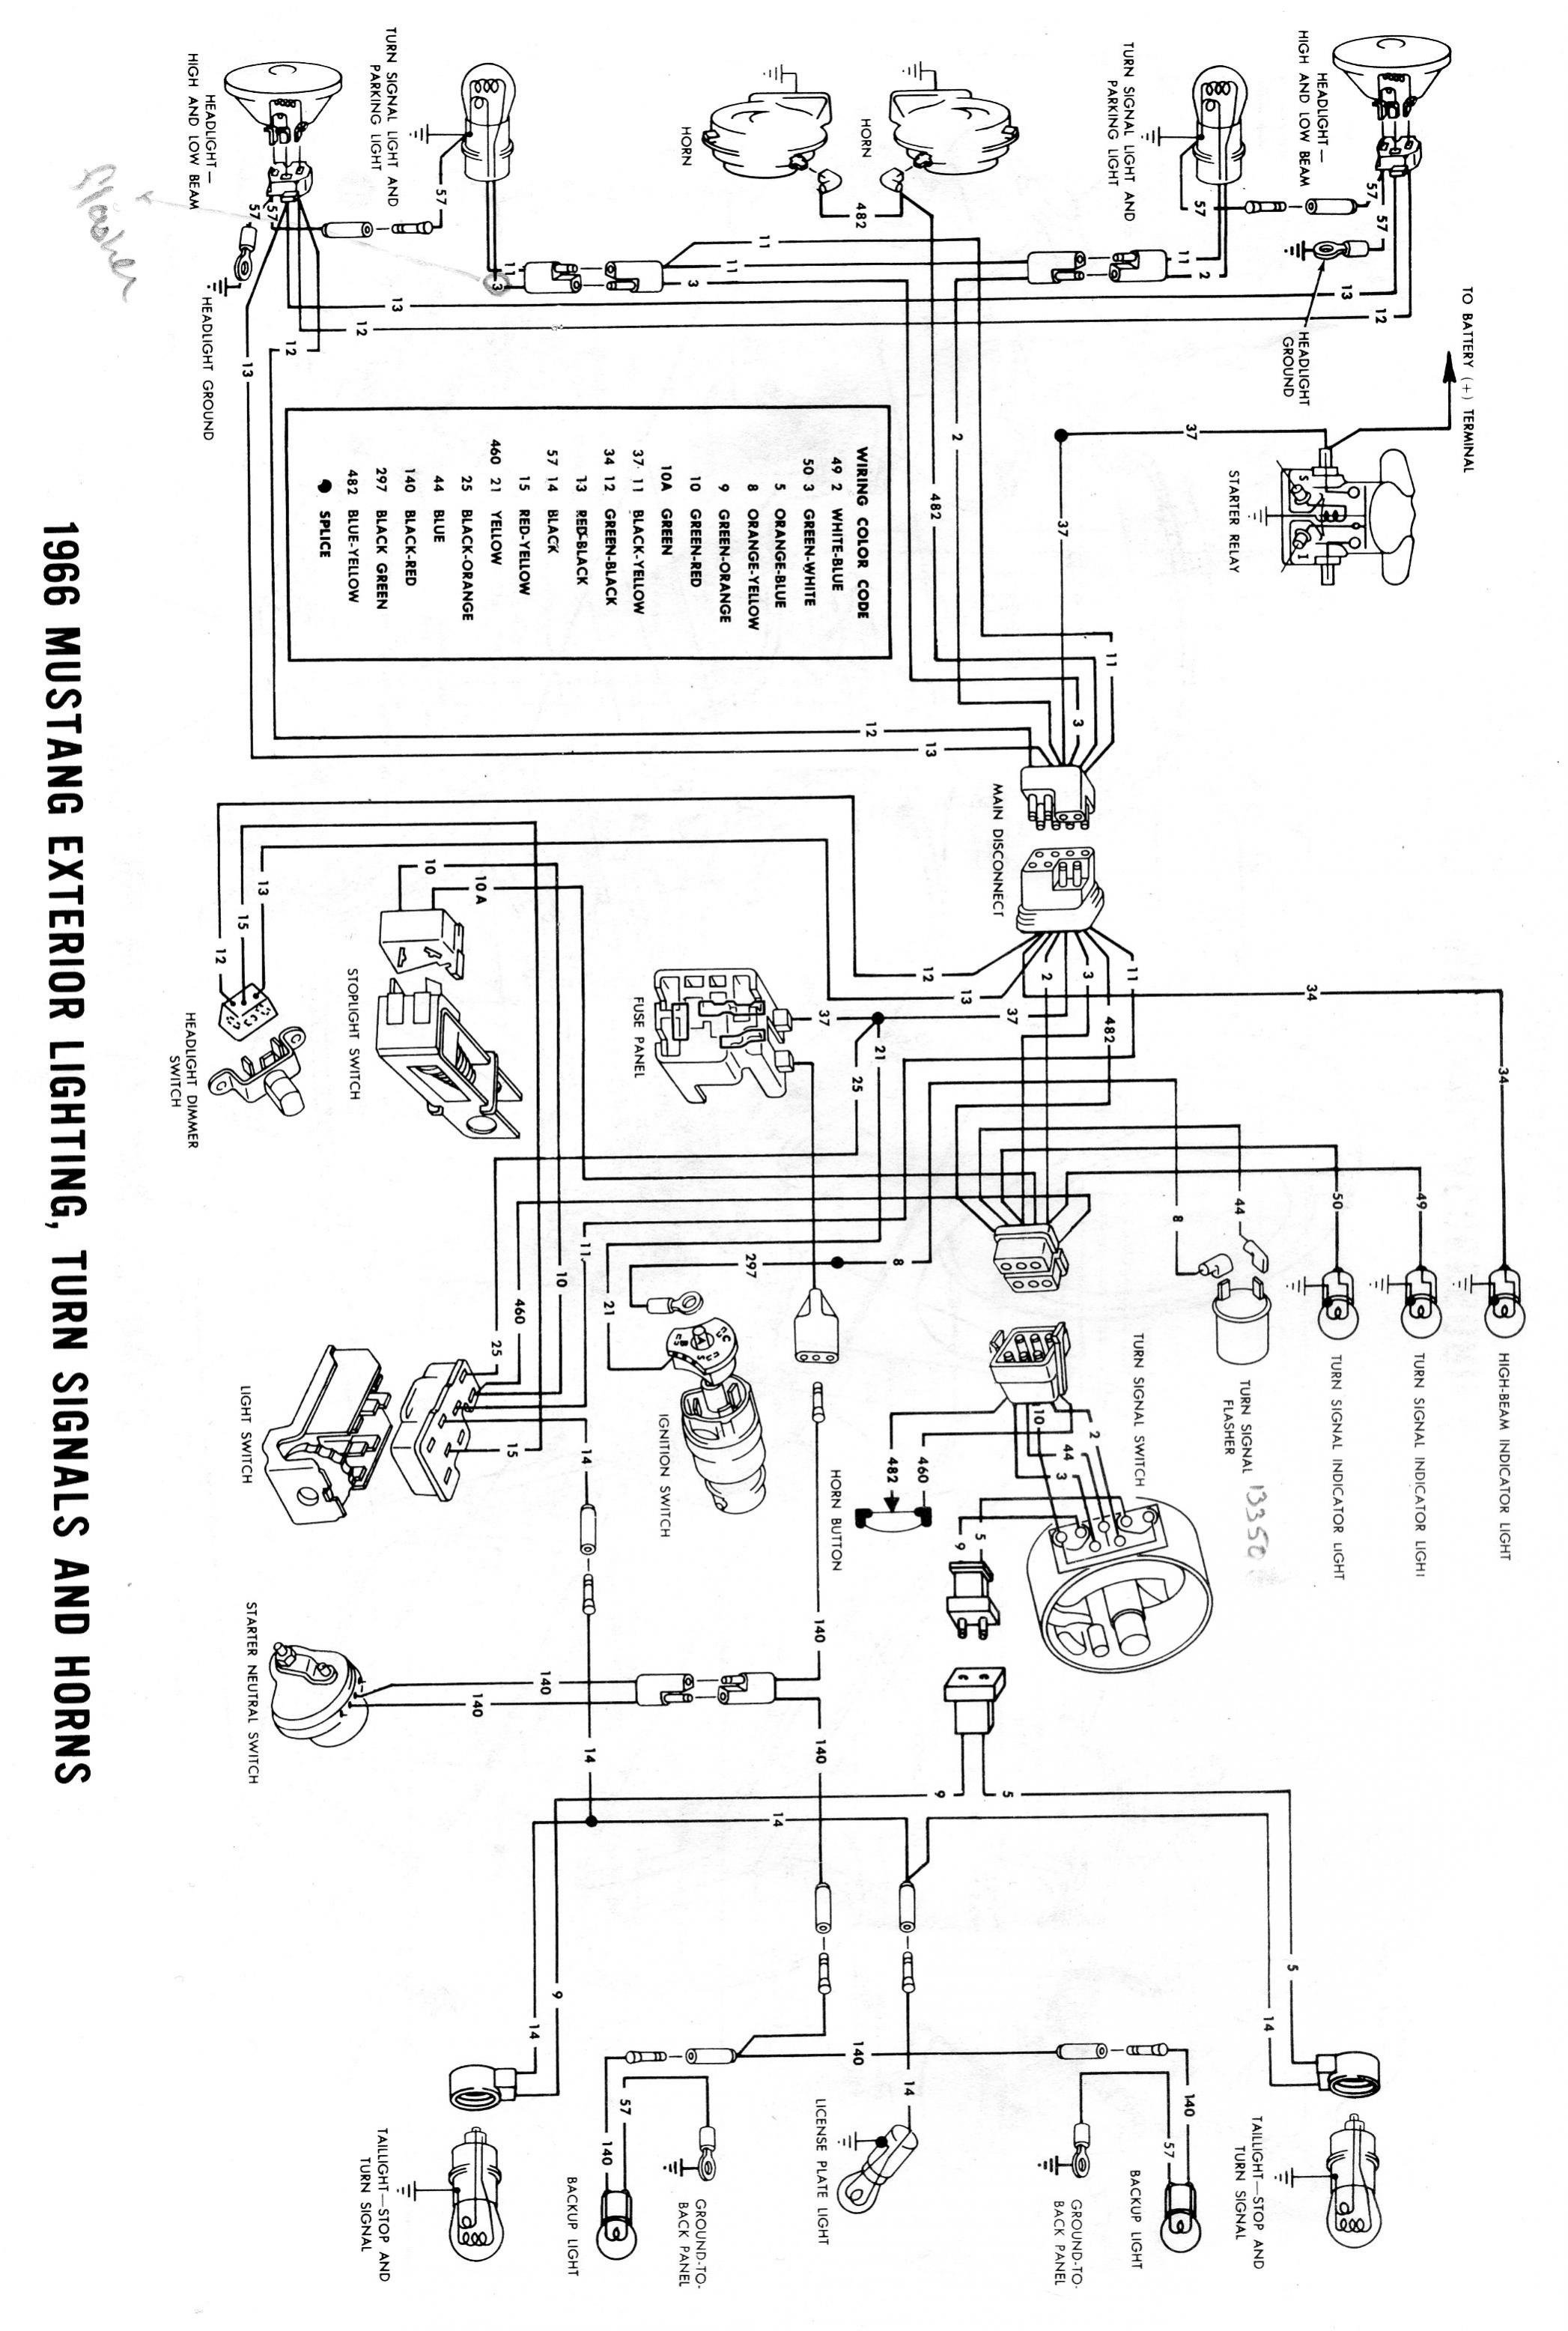 66 Ford Mustang Wiring Diagram. Ford. Wiring Diagram Images